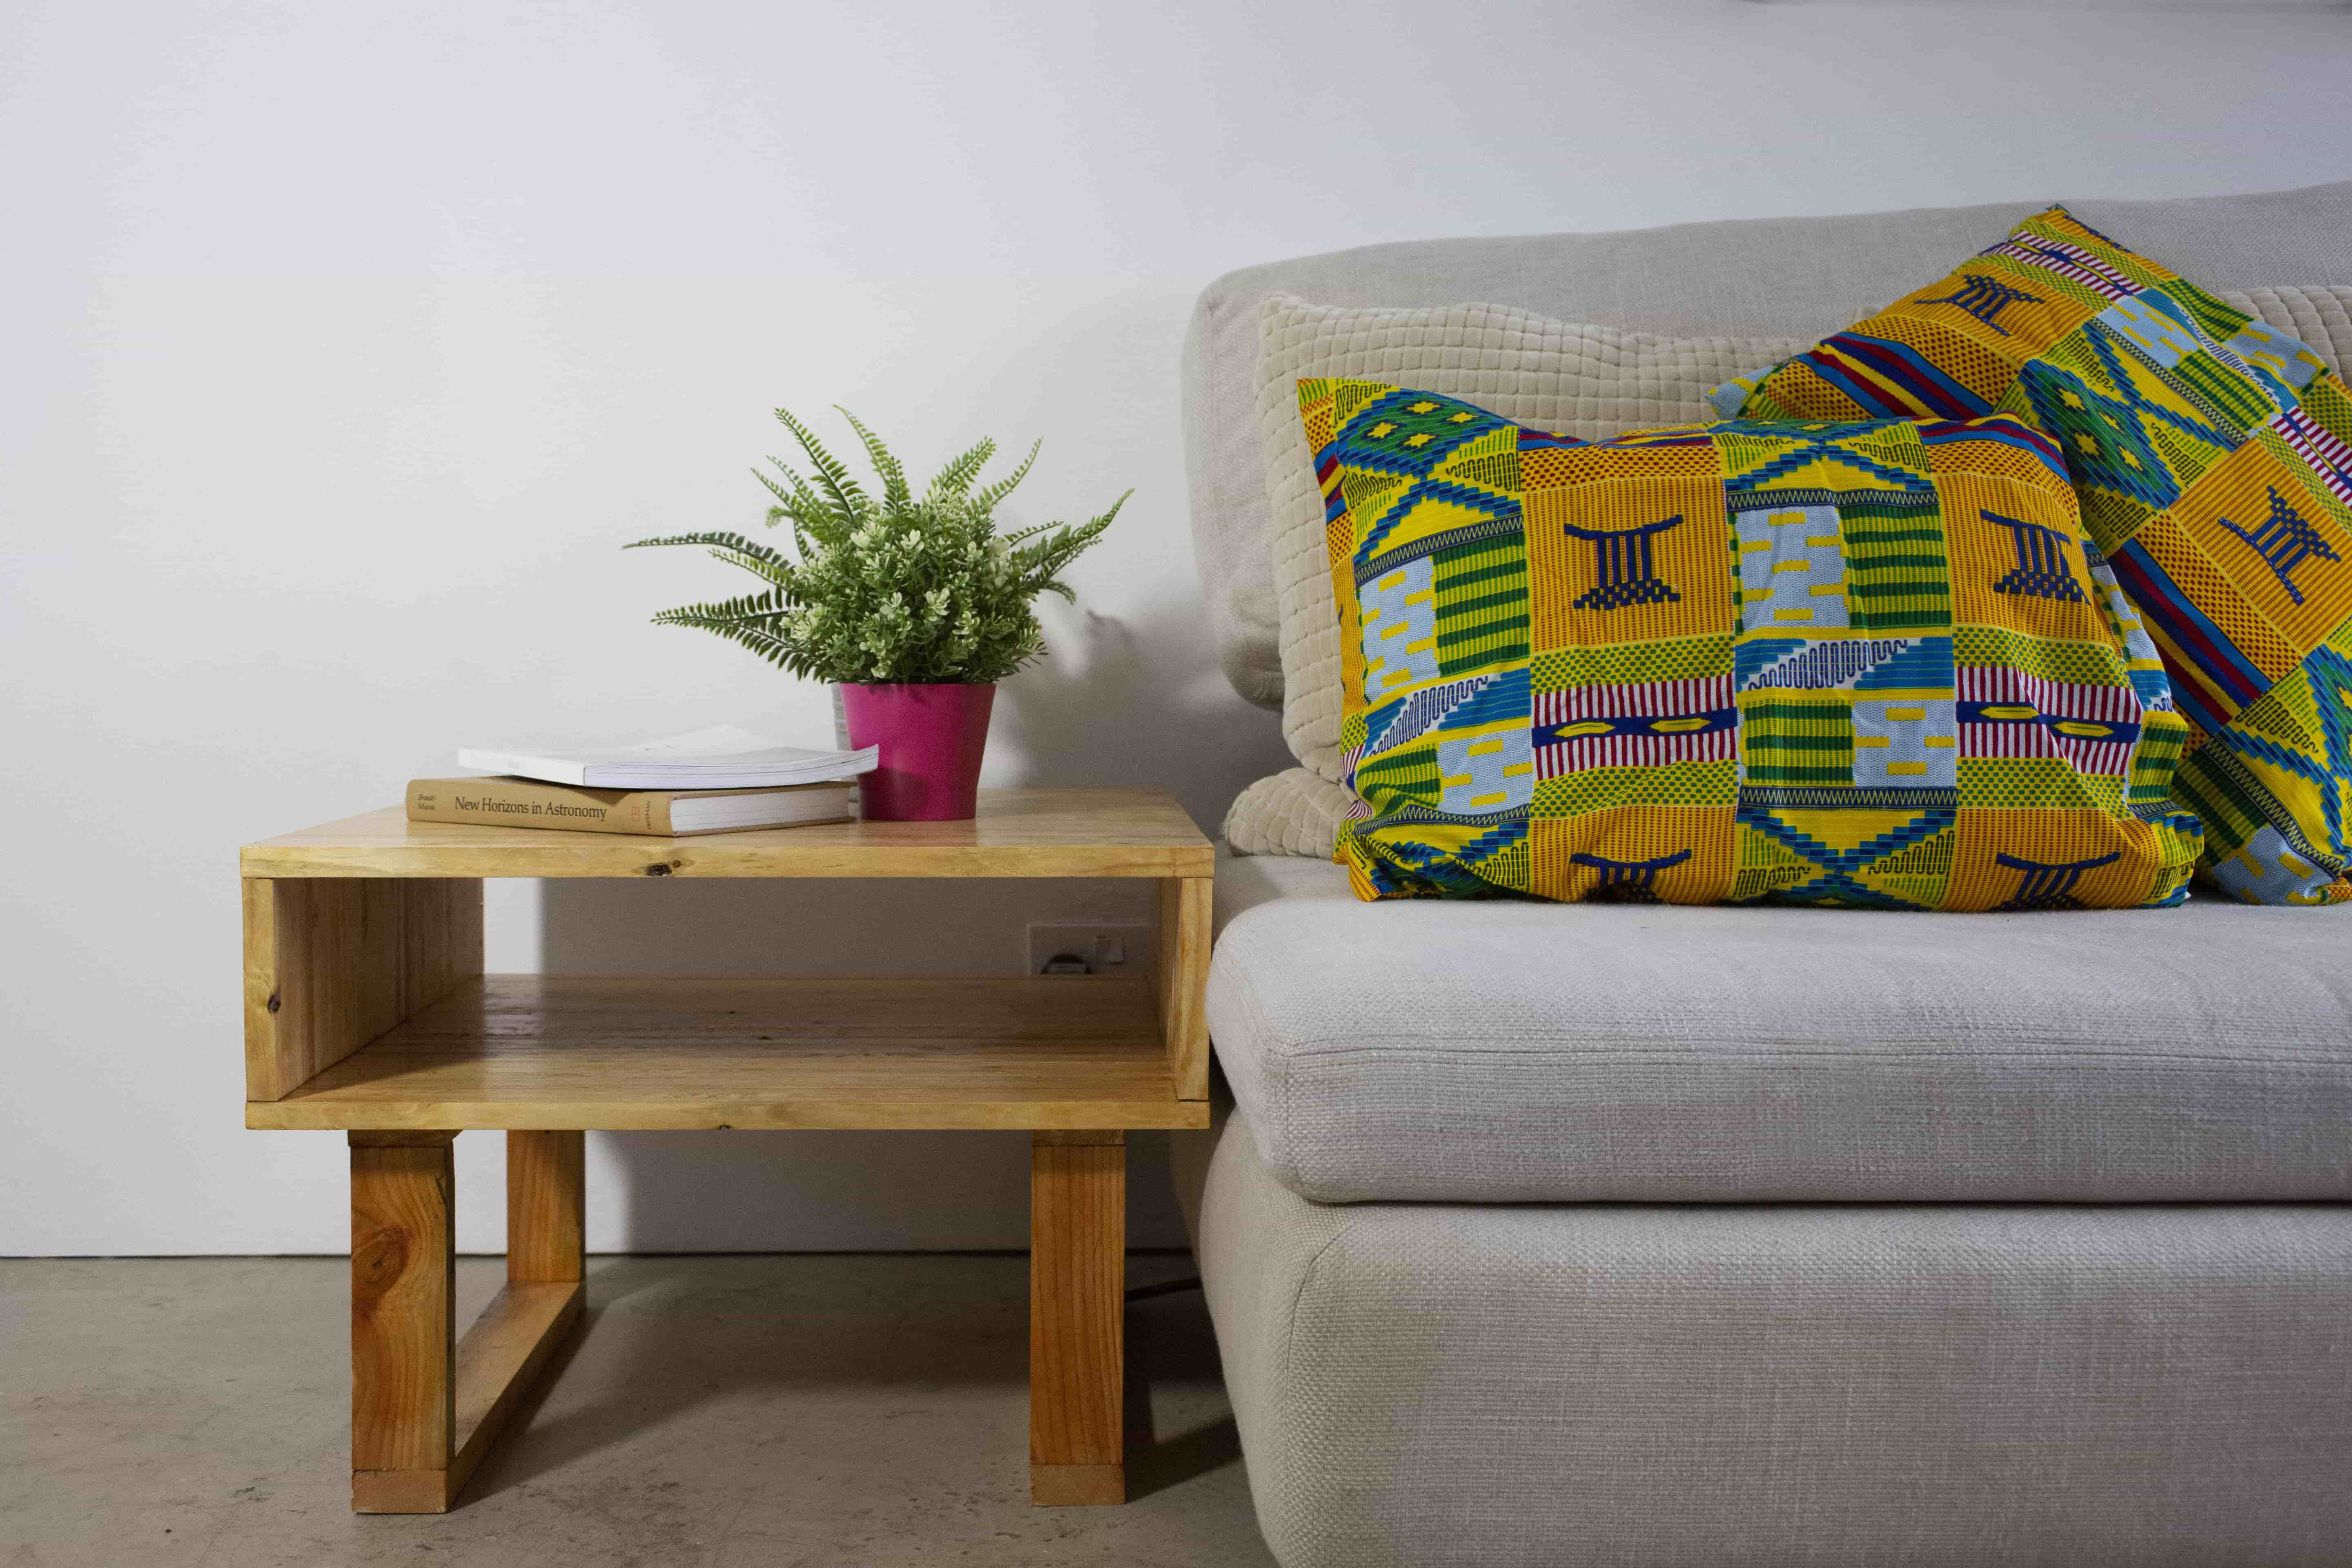 Our upcycled Cowley Side Table next to couch with african printed cushions (InUse-ReUse Furniture)